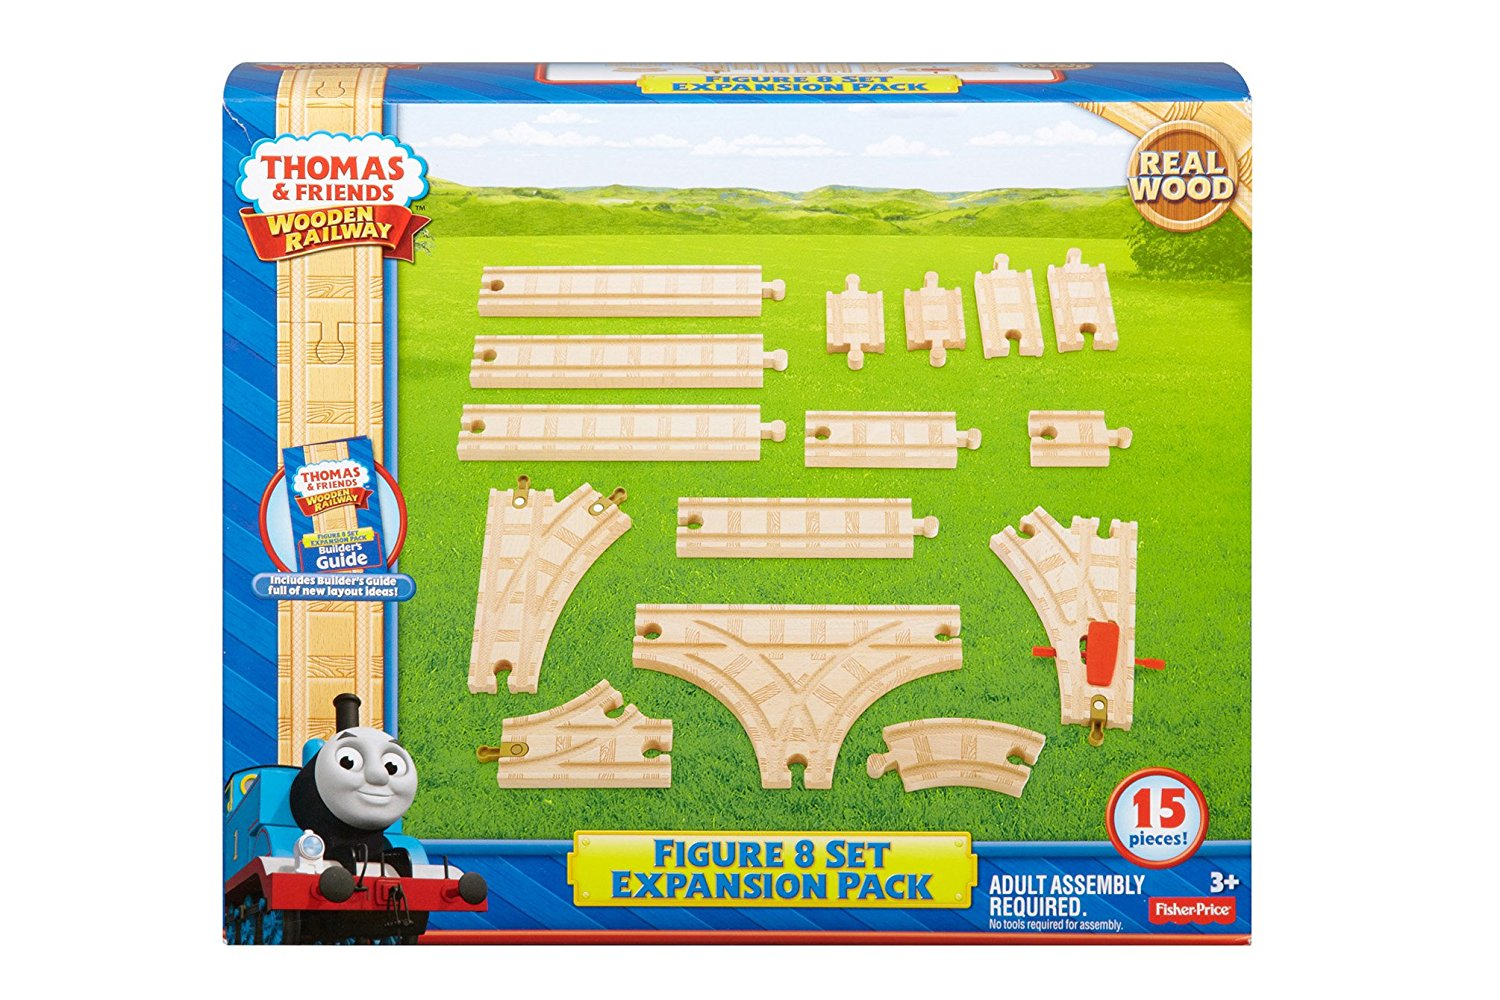 Fisher Price Thomas The Train Wooden Railway Figure 8 Expansion Pack